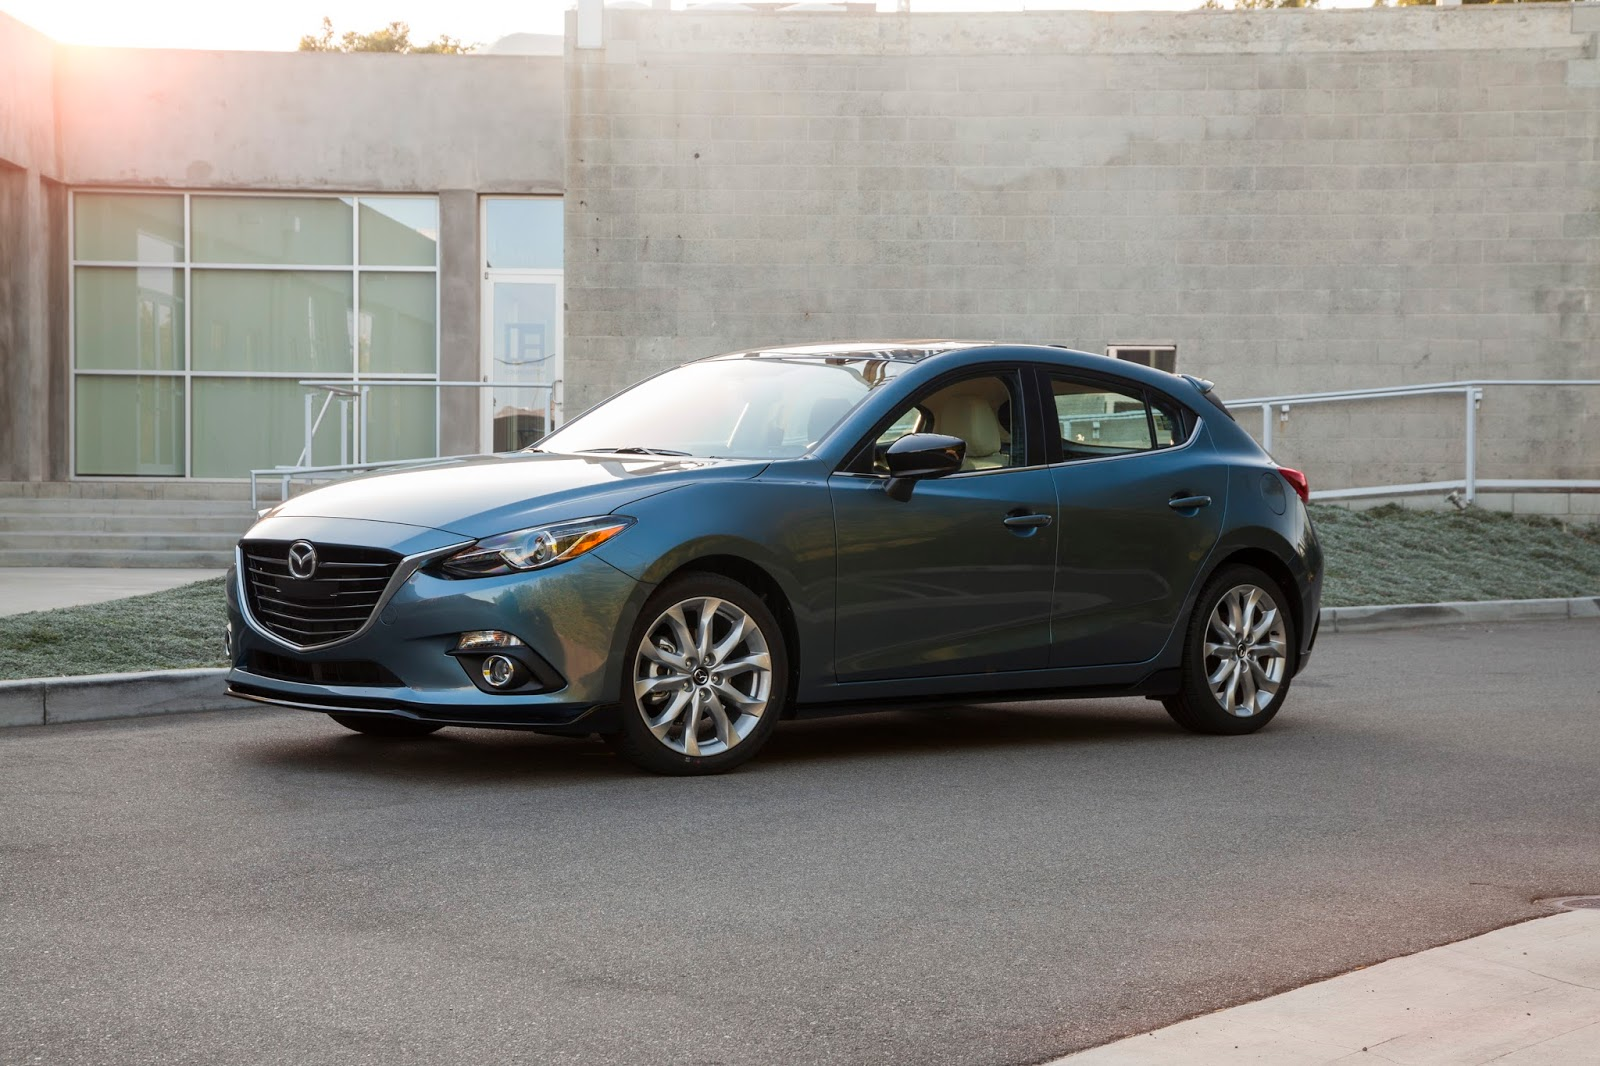 medium resolution of why am i doing a writeup on a 2015 mazda 3 oil and filter change on a blog focused on electric bikes solar and small electronics